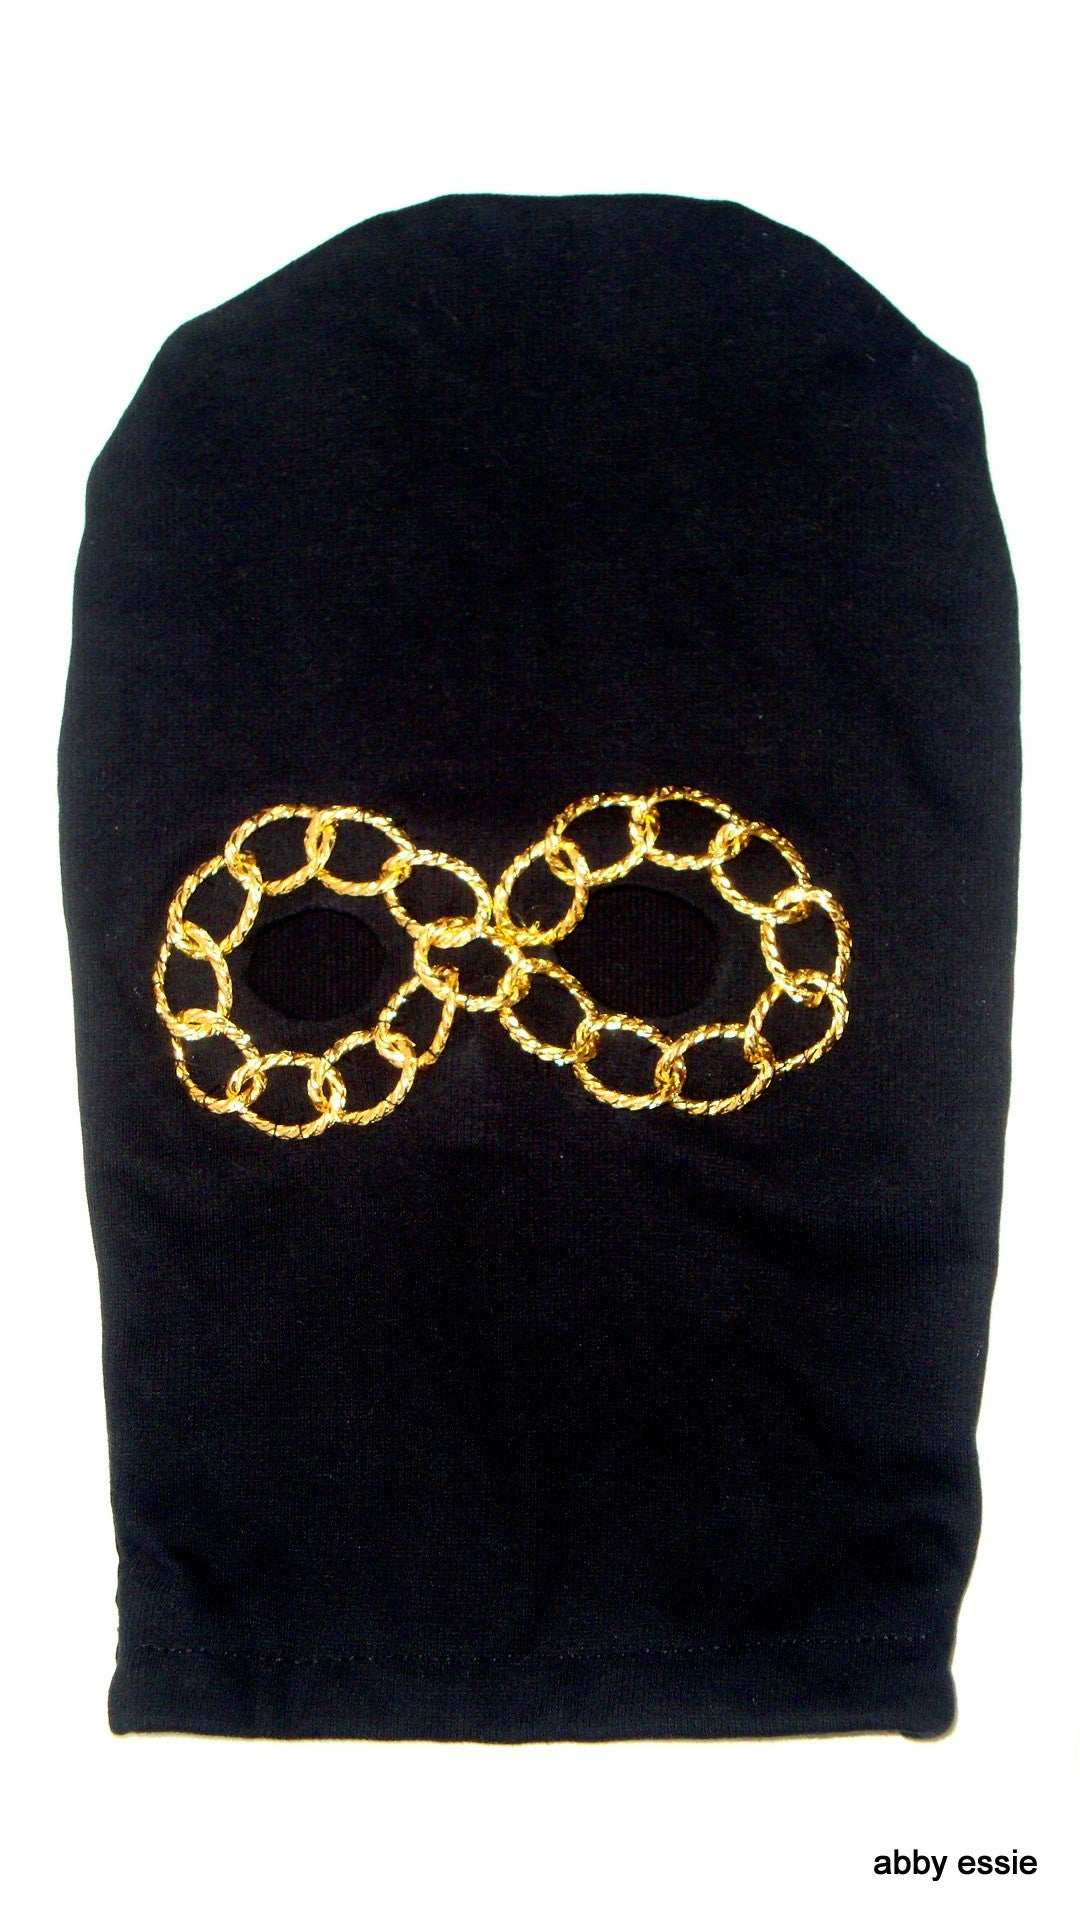 NEW HIP HOP ROCK STAR METAL BAND BLACK KNIT GOLD CHAIN EYE SKI MASK COSTUME HAND